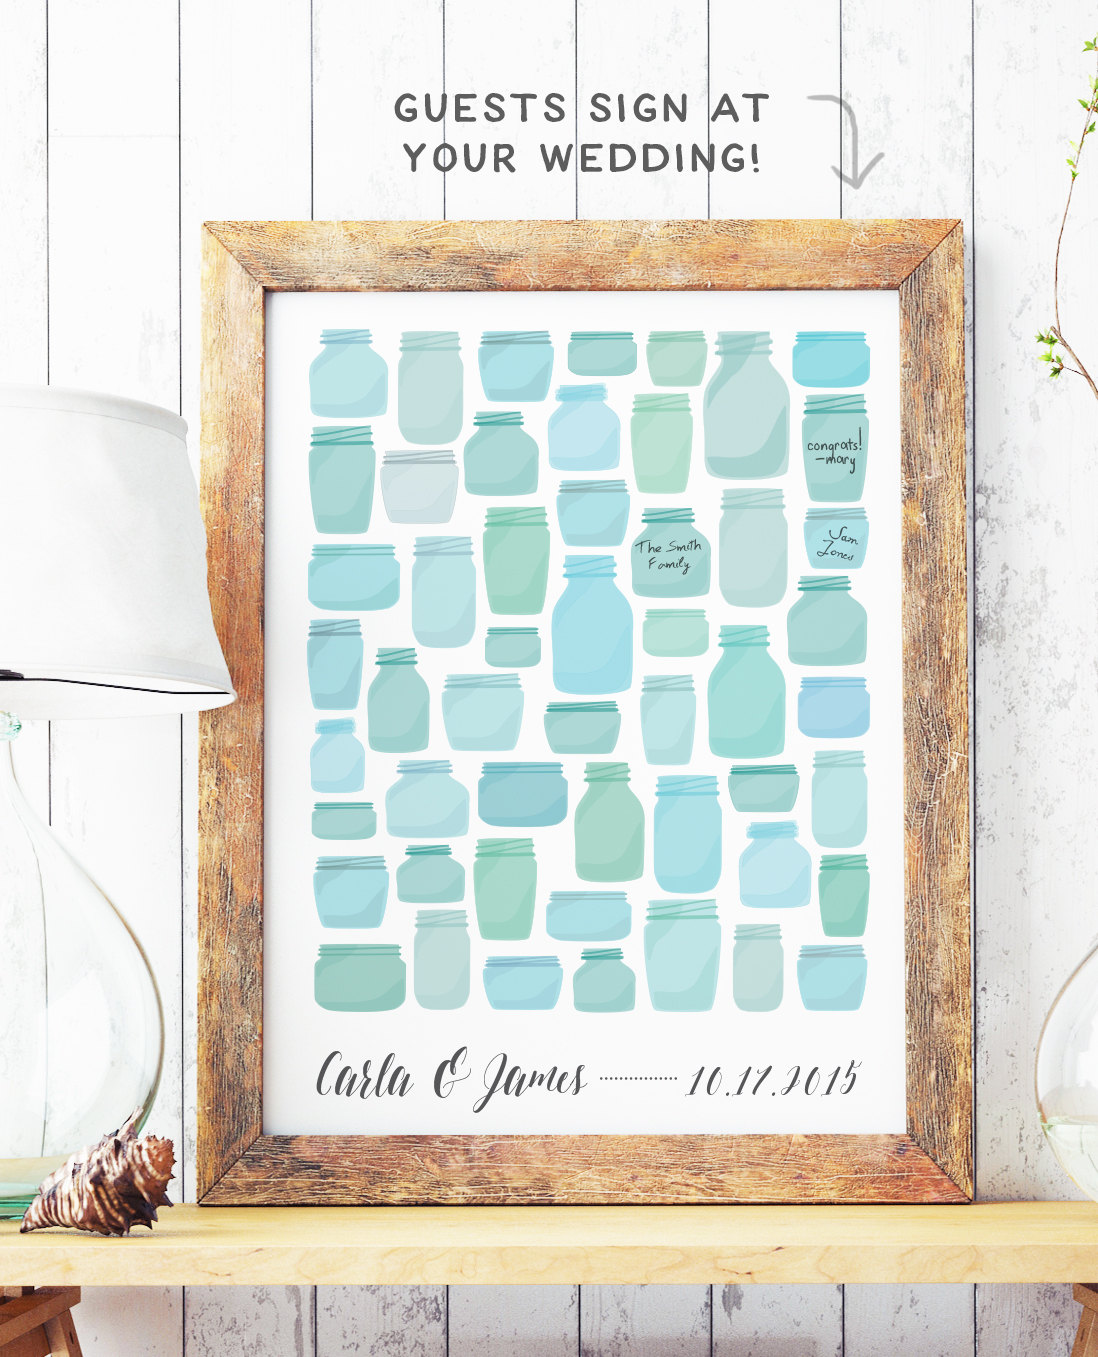 Creative Guest Book Alternatives from Etsy! | The Budget Savvy Bride